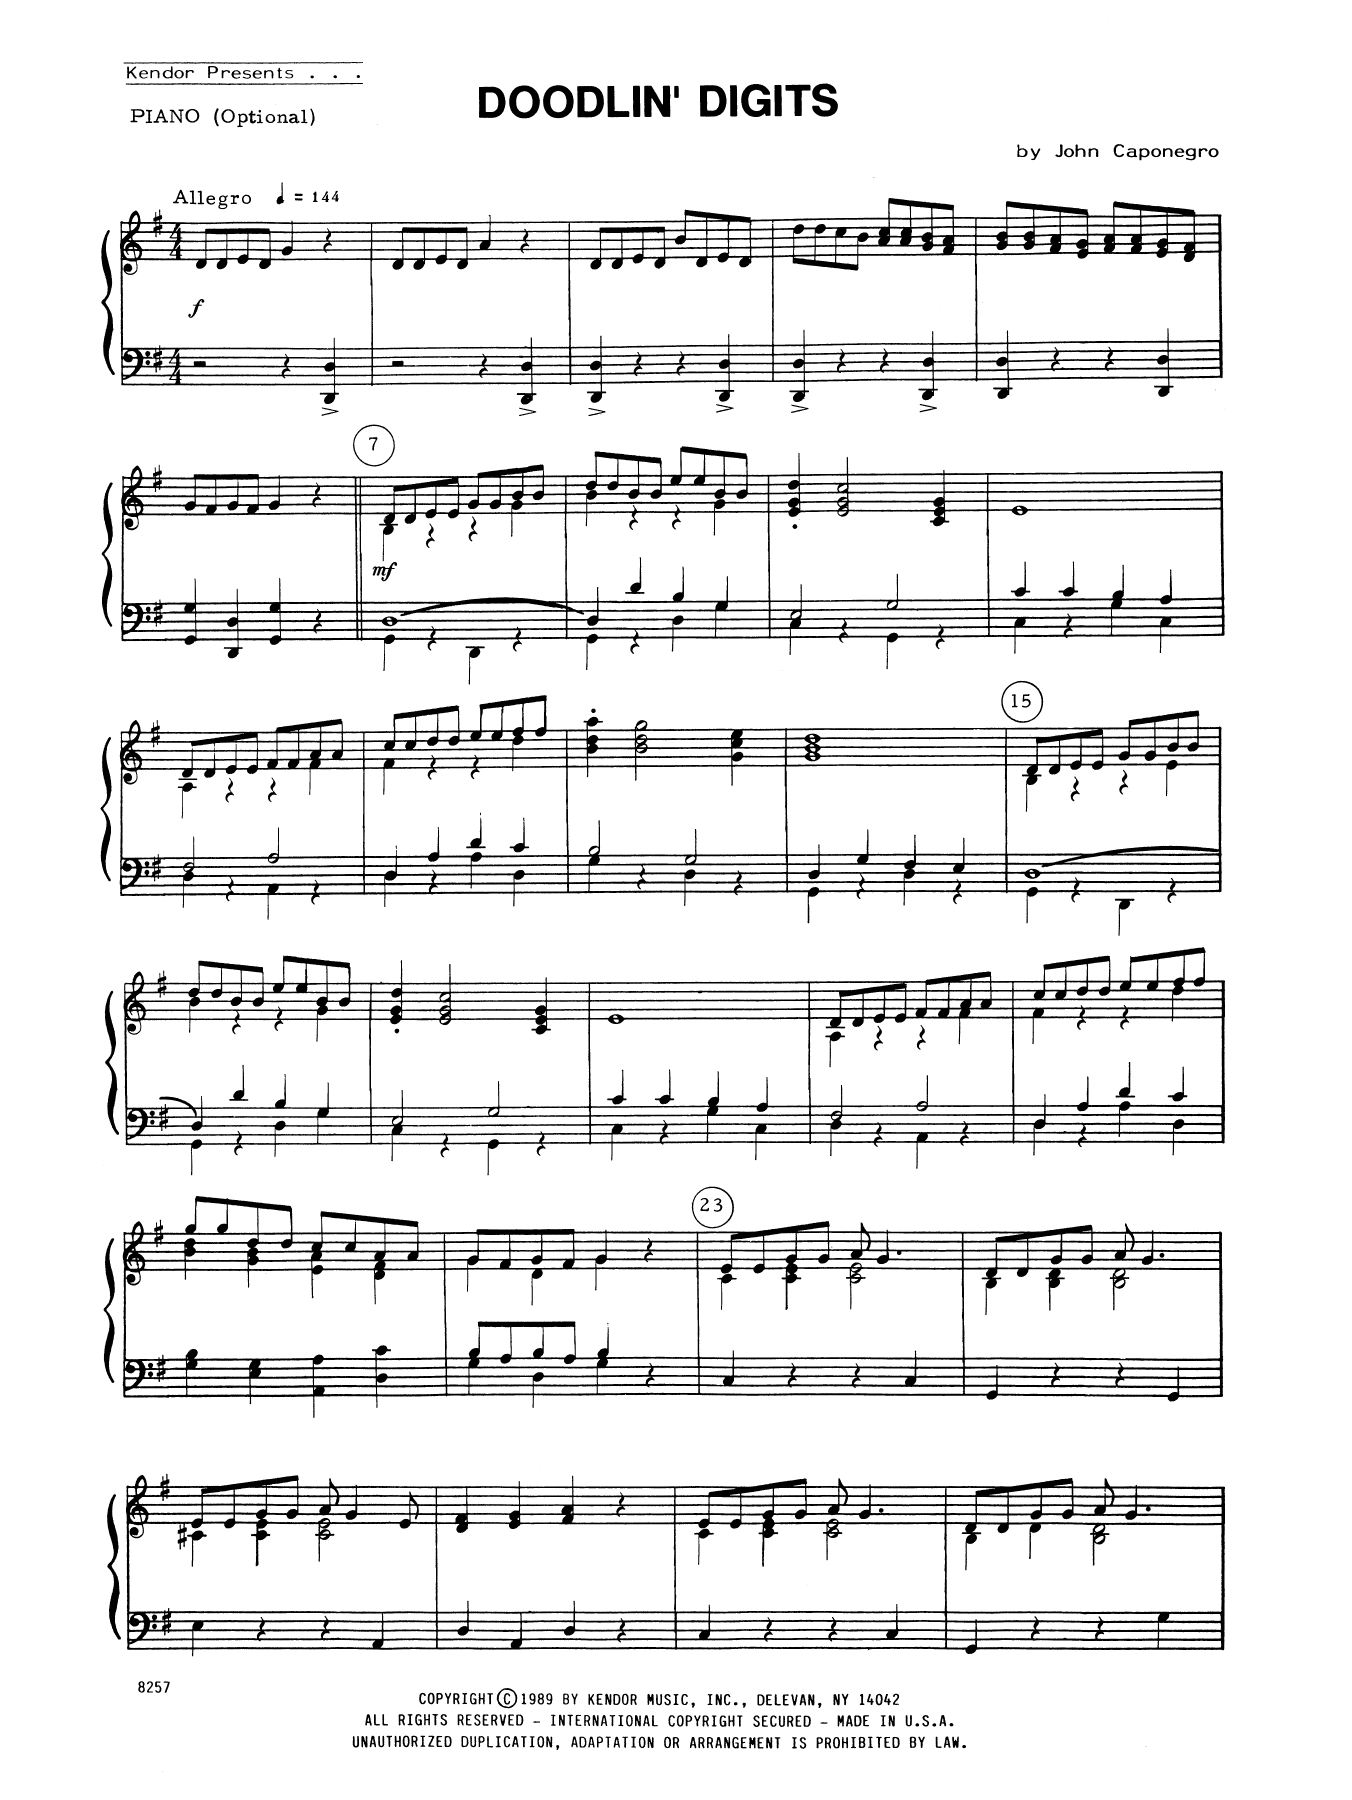 John Caponegro Doodlin' Digits - Piano Accompaniment sheet music notes and chords. Download Printable PDF.